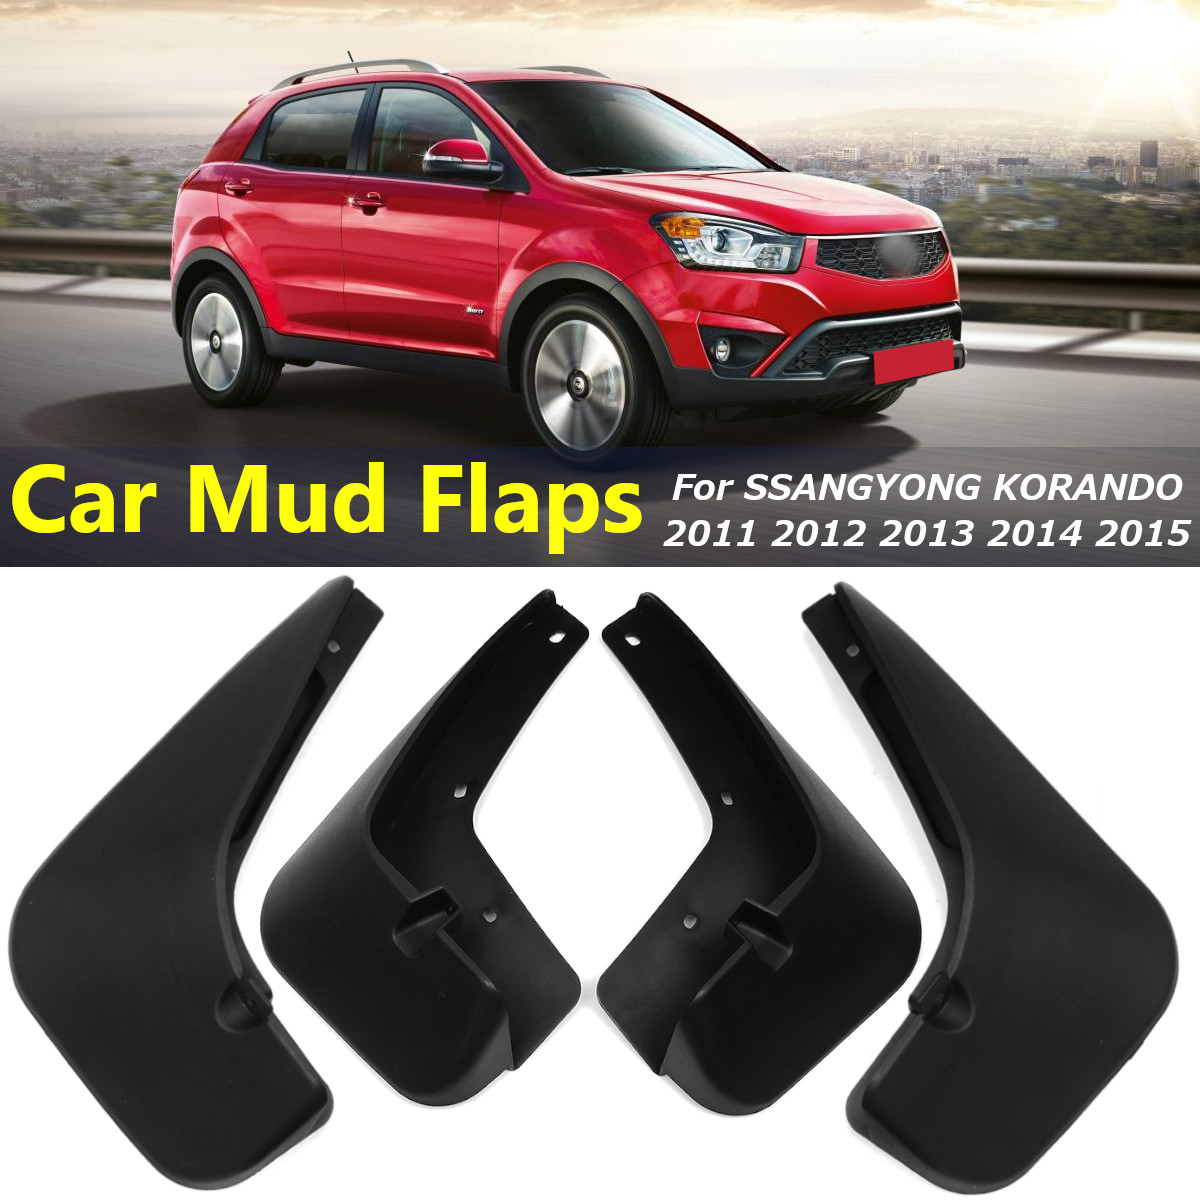 For SsangYong Korando New Actyon C200 2011-2015 Mud Flaps Splash Guards Fender Mudguards Mudflaps Car Accessories image